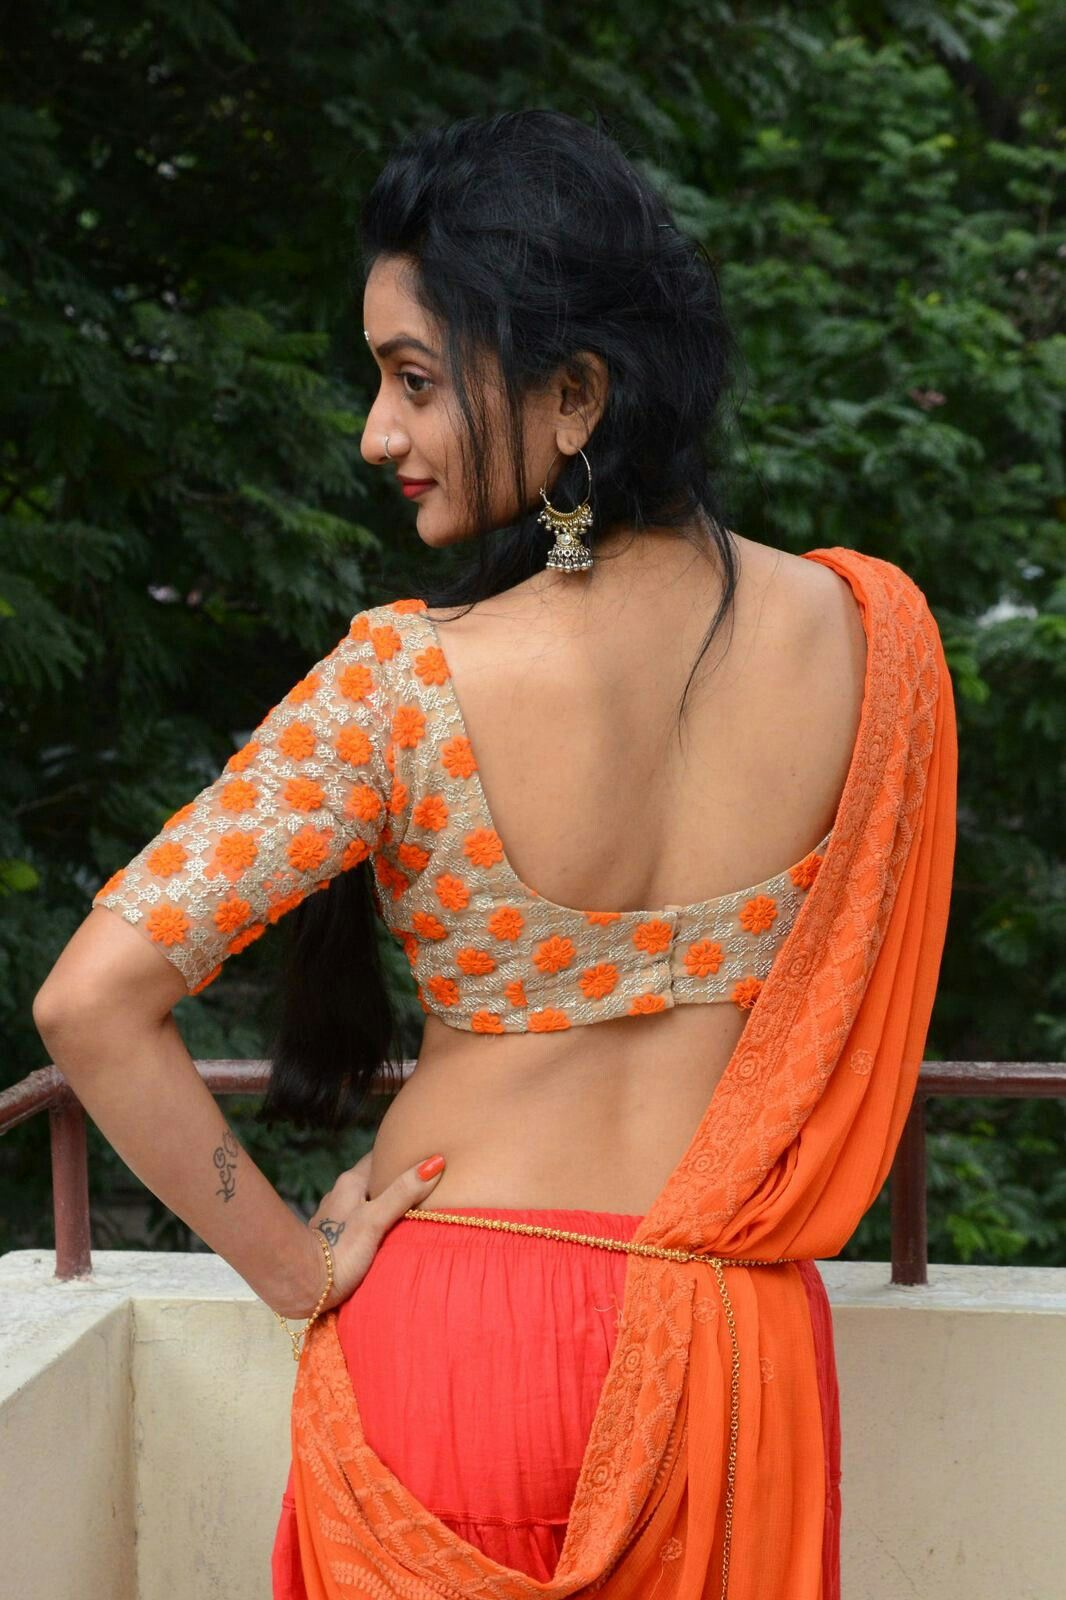 The figure of this South actress has millions of fans, heart will be happy seeing the pictures